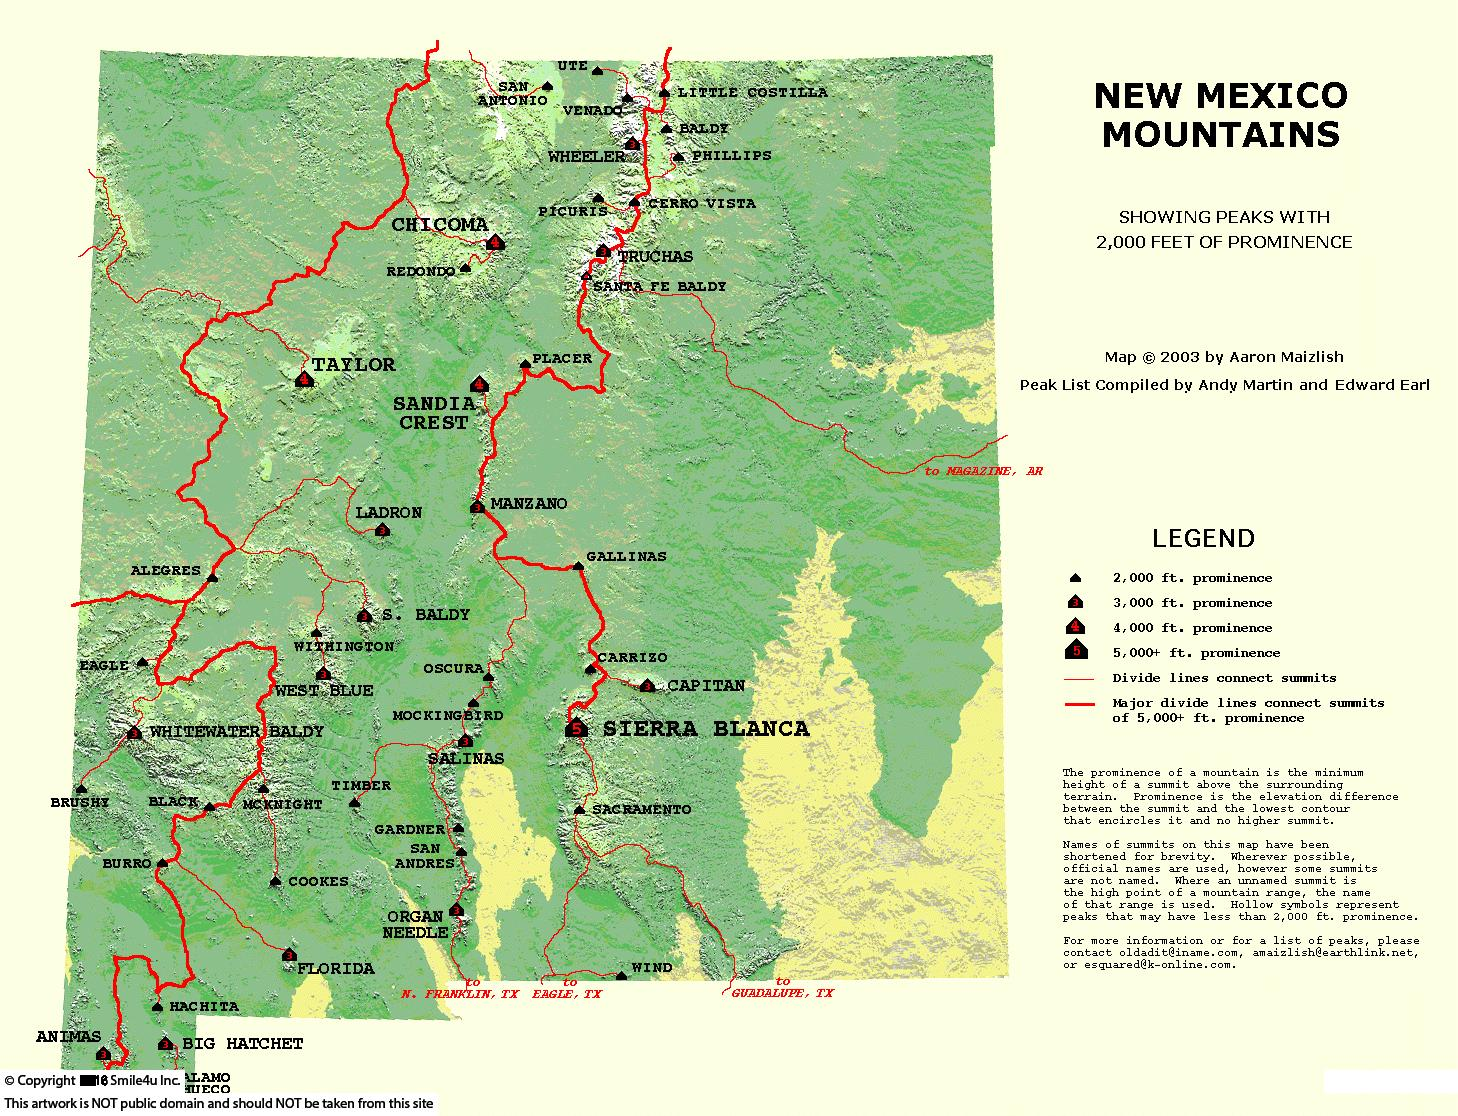 936191_watermarked_newmexicosummits.png